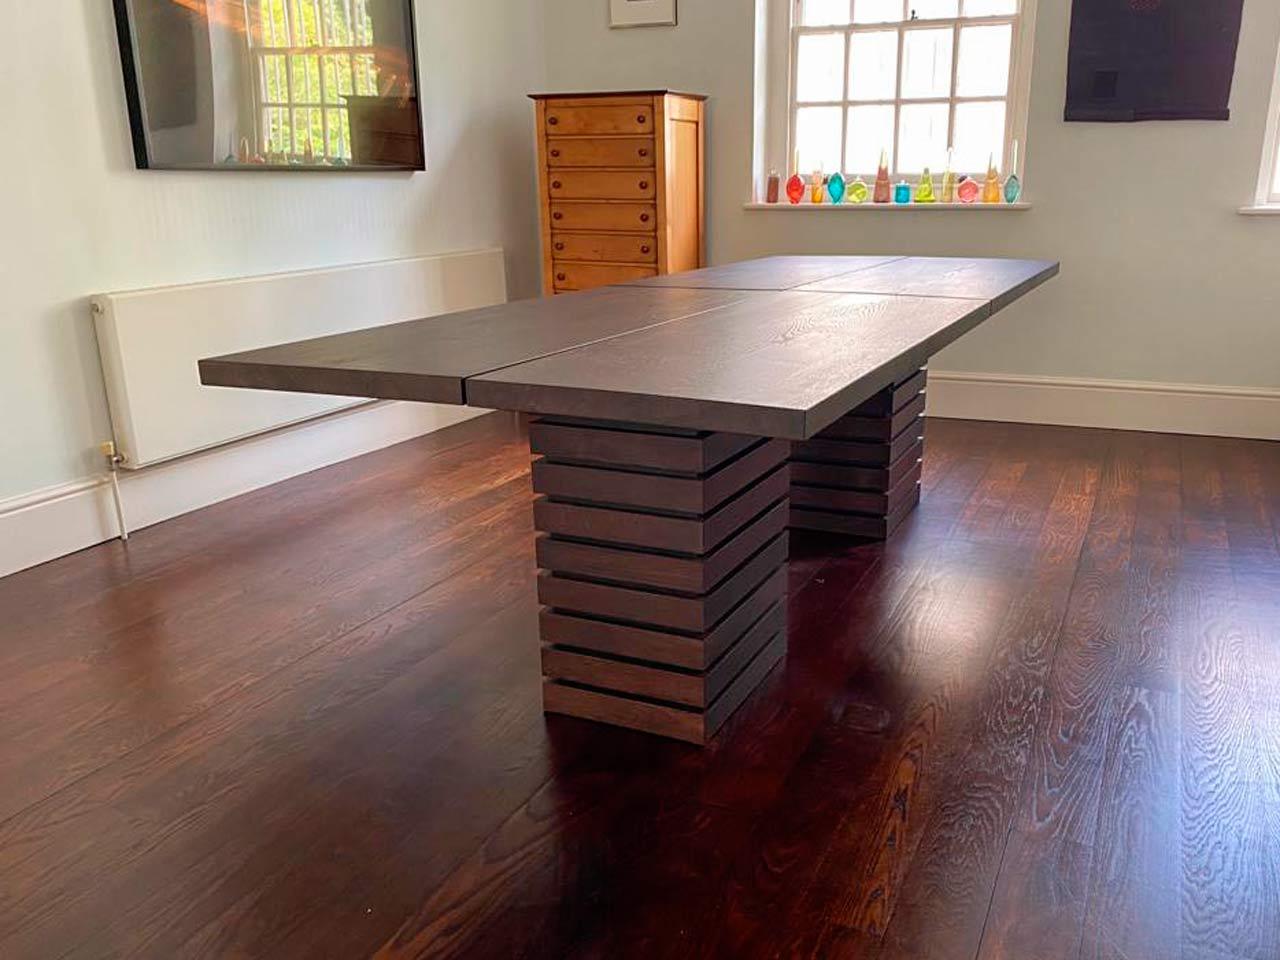 abacus-tables-project-932-pic-3